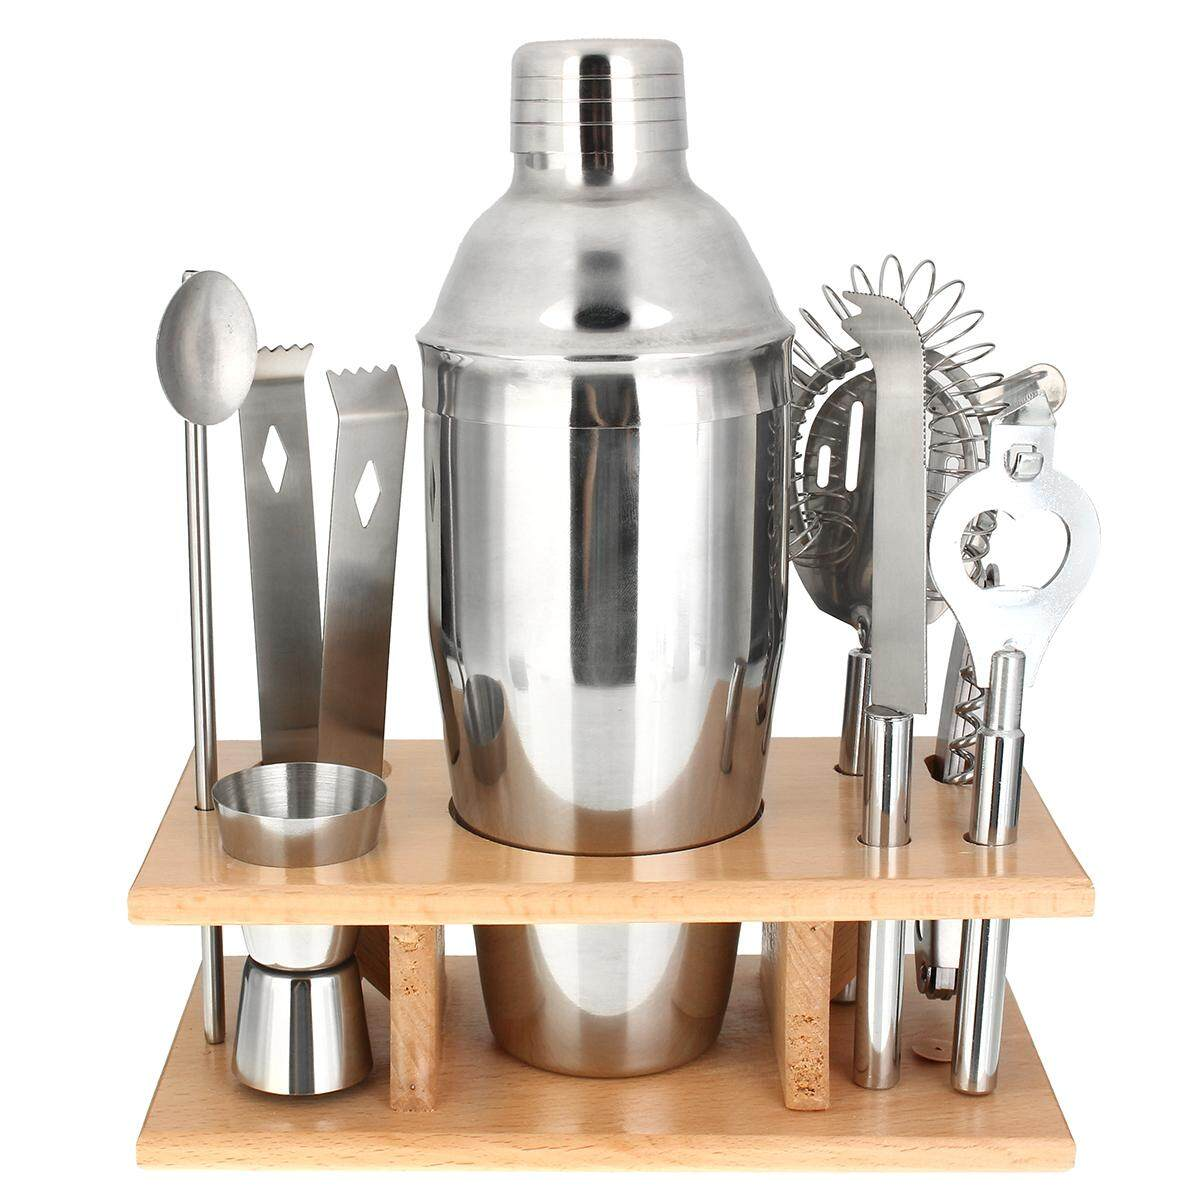 Stainless Steel Cocktail Shakers Mixer Drink Bartender Martini Bar Set Tools Kit750ml By Glimmer.